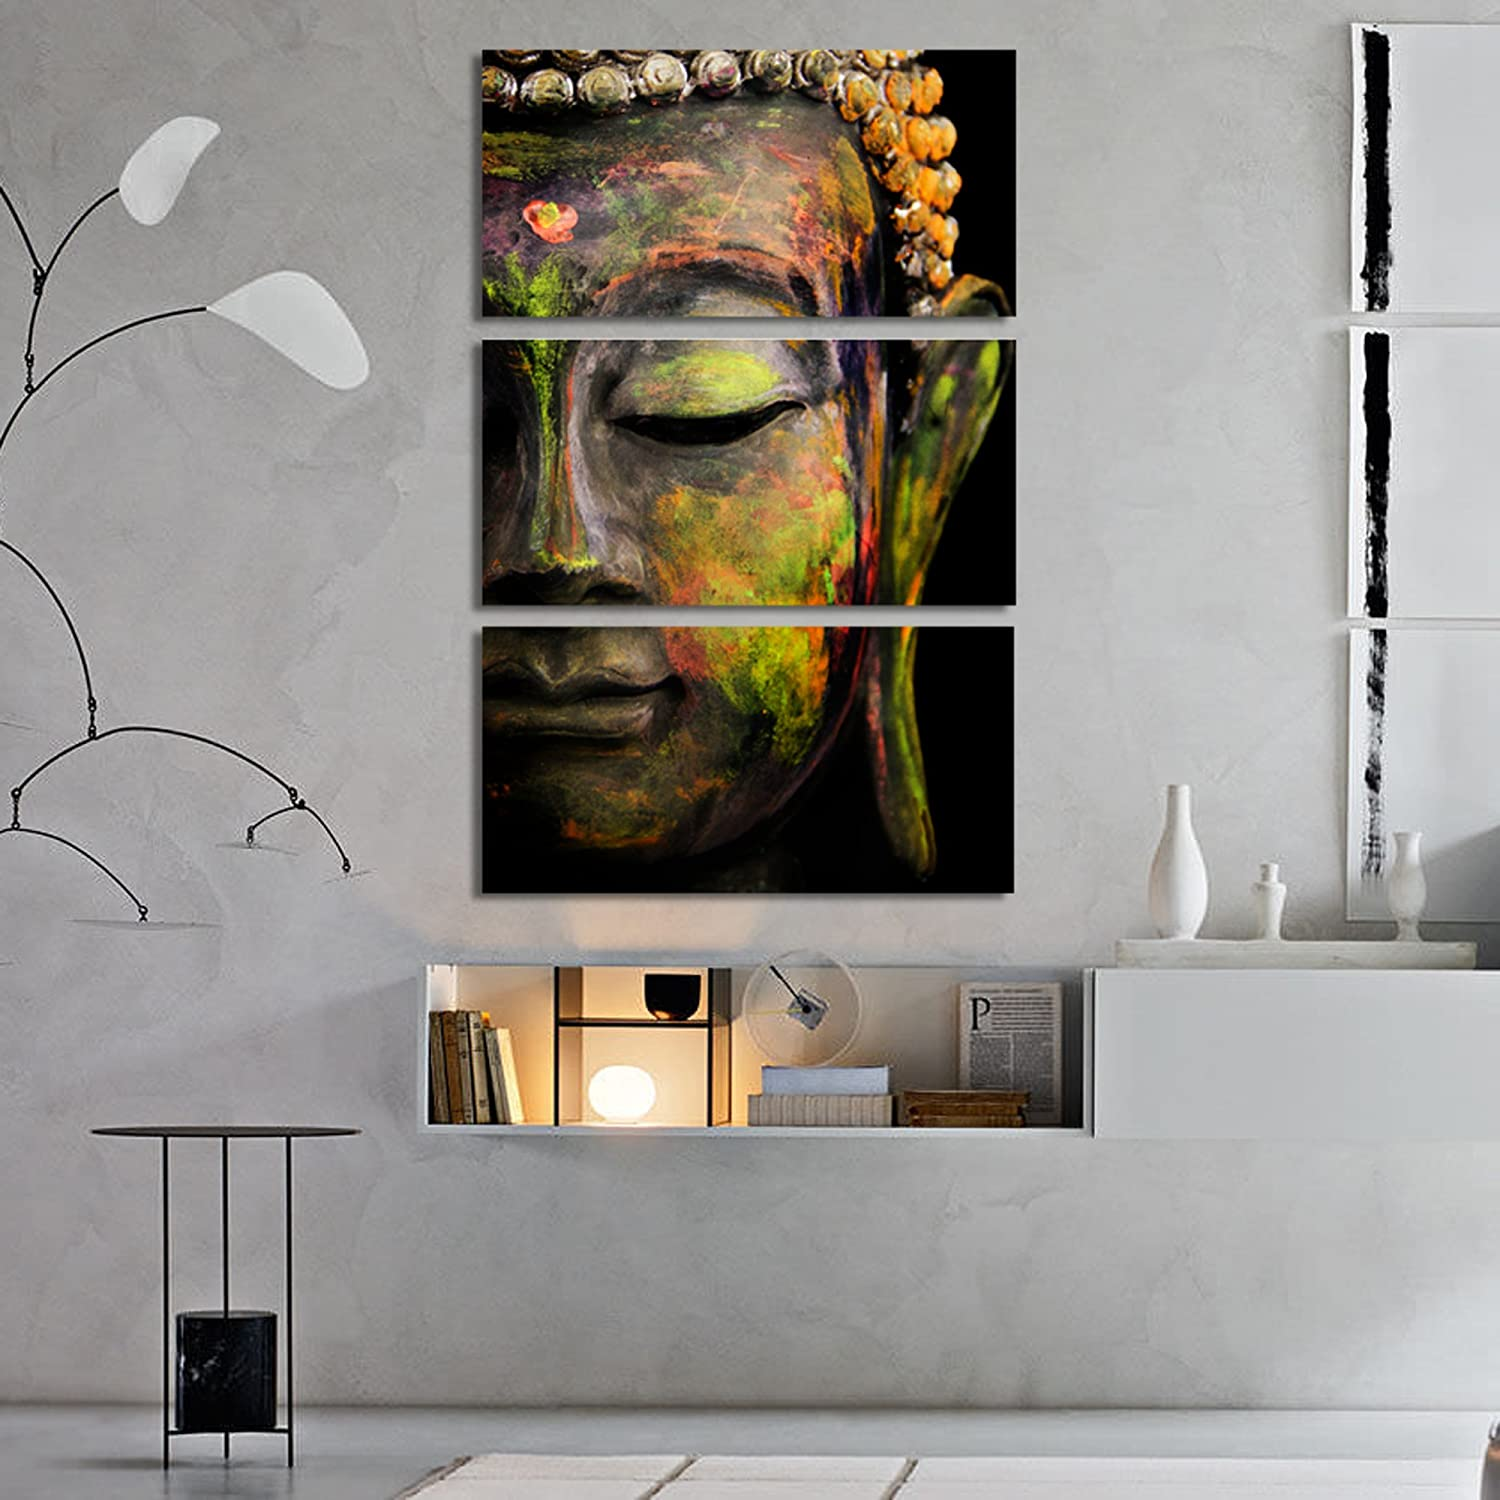 Craftter Colorful Buddha 3 Pcs Hanging Metal Wall Art Painting Home